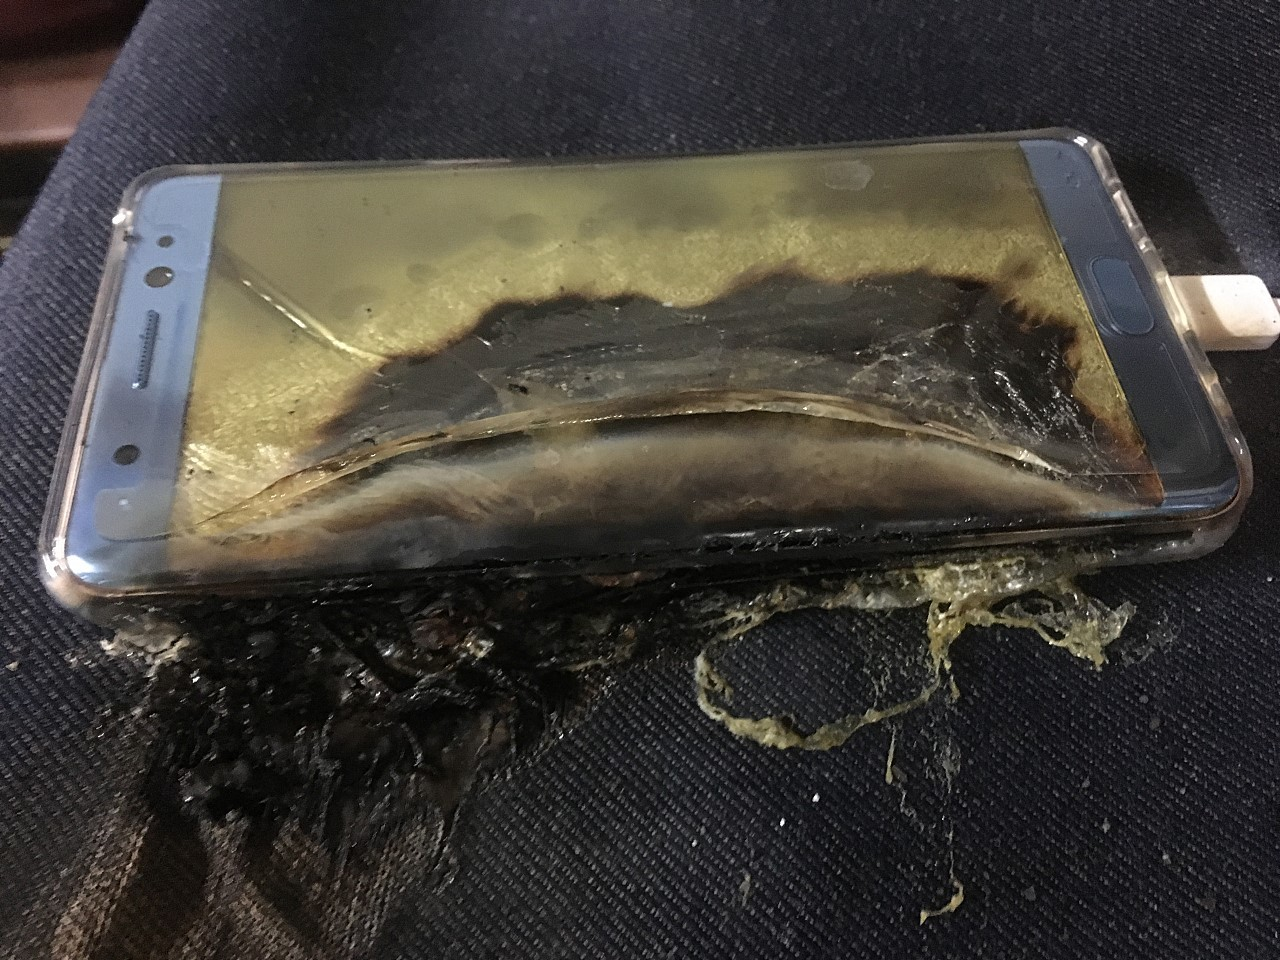 New Transportation Regulations Regarding Samsung Galaxy Note 7 Explosions